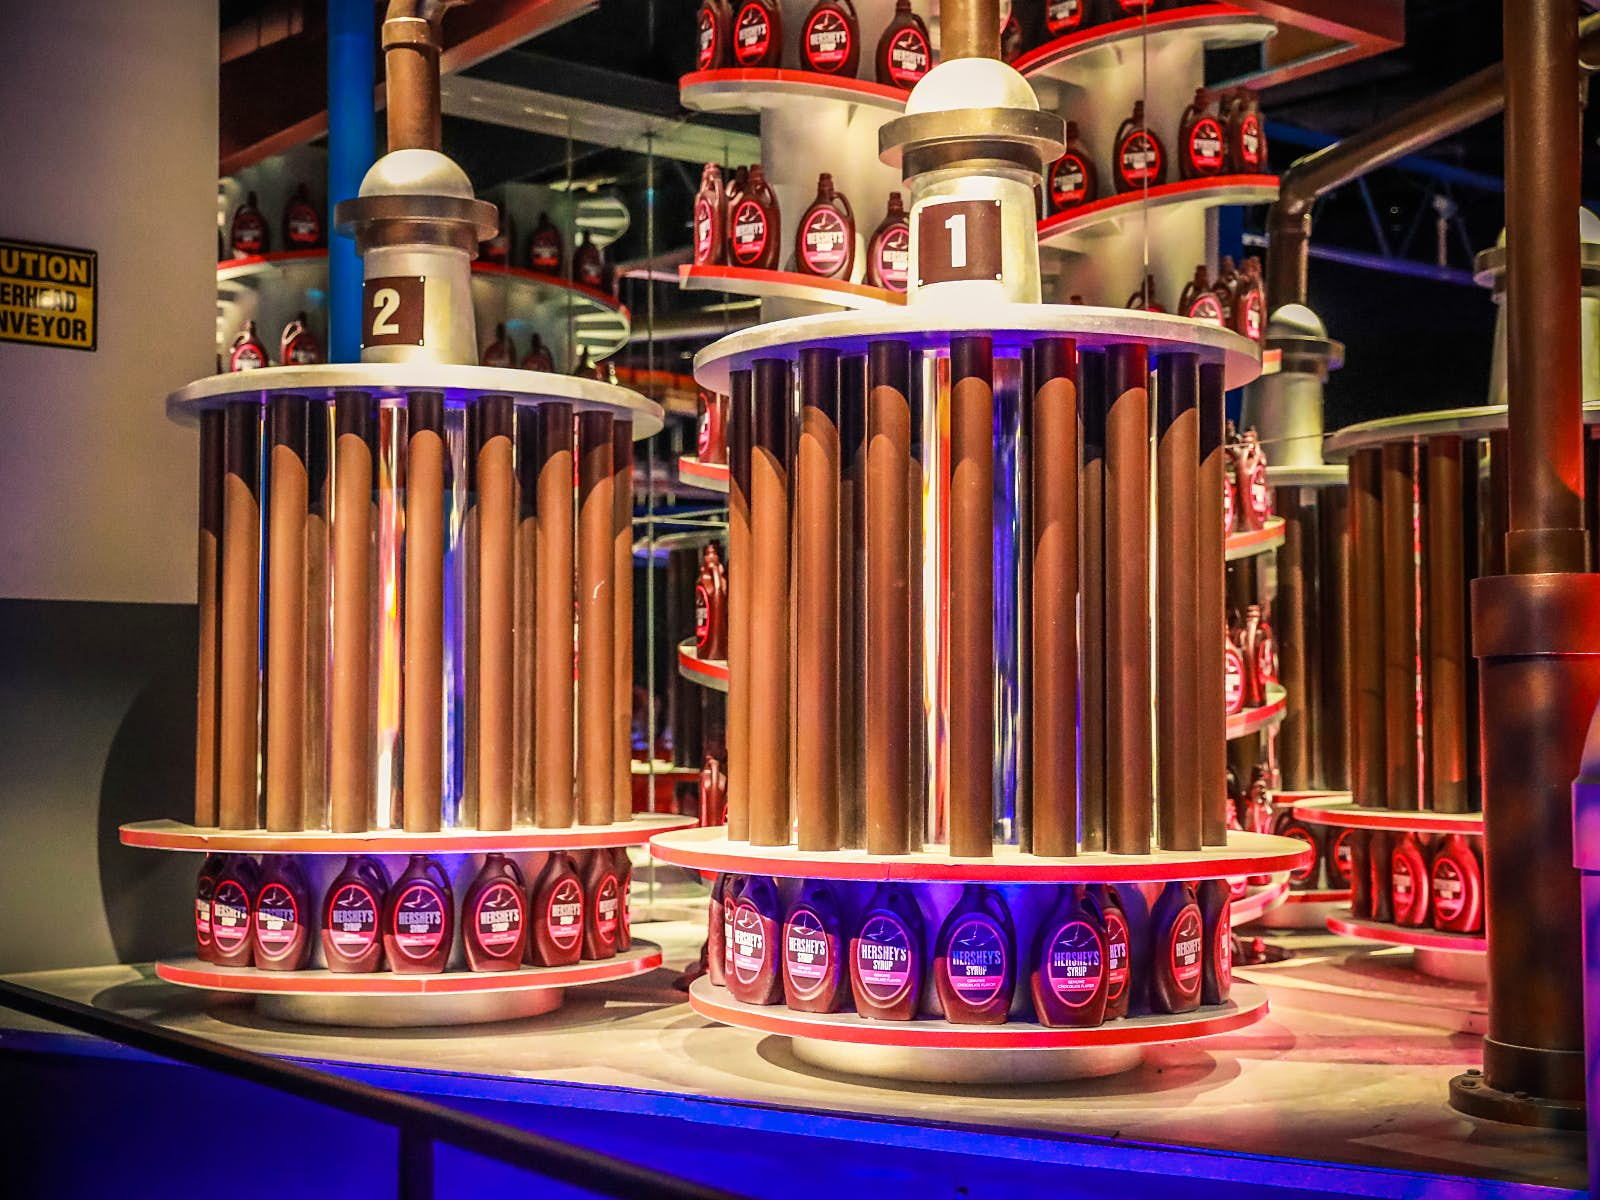 Disney alternatives - Inside Hershey's Chocolate World. Bottles of chocolate sauce line the walls and displays